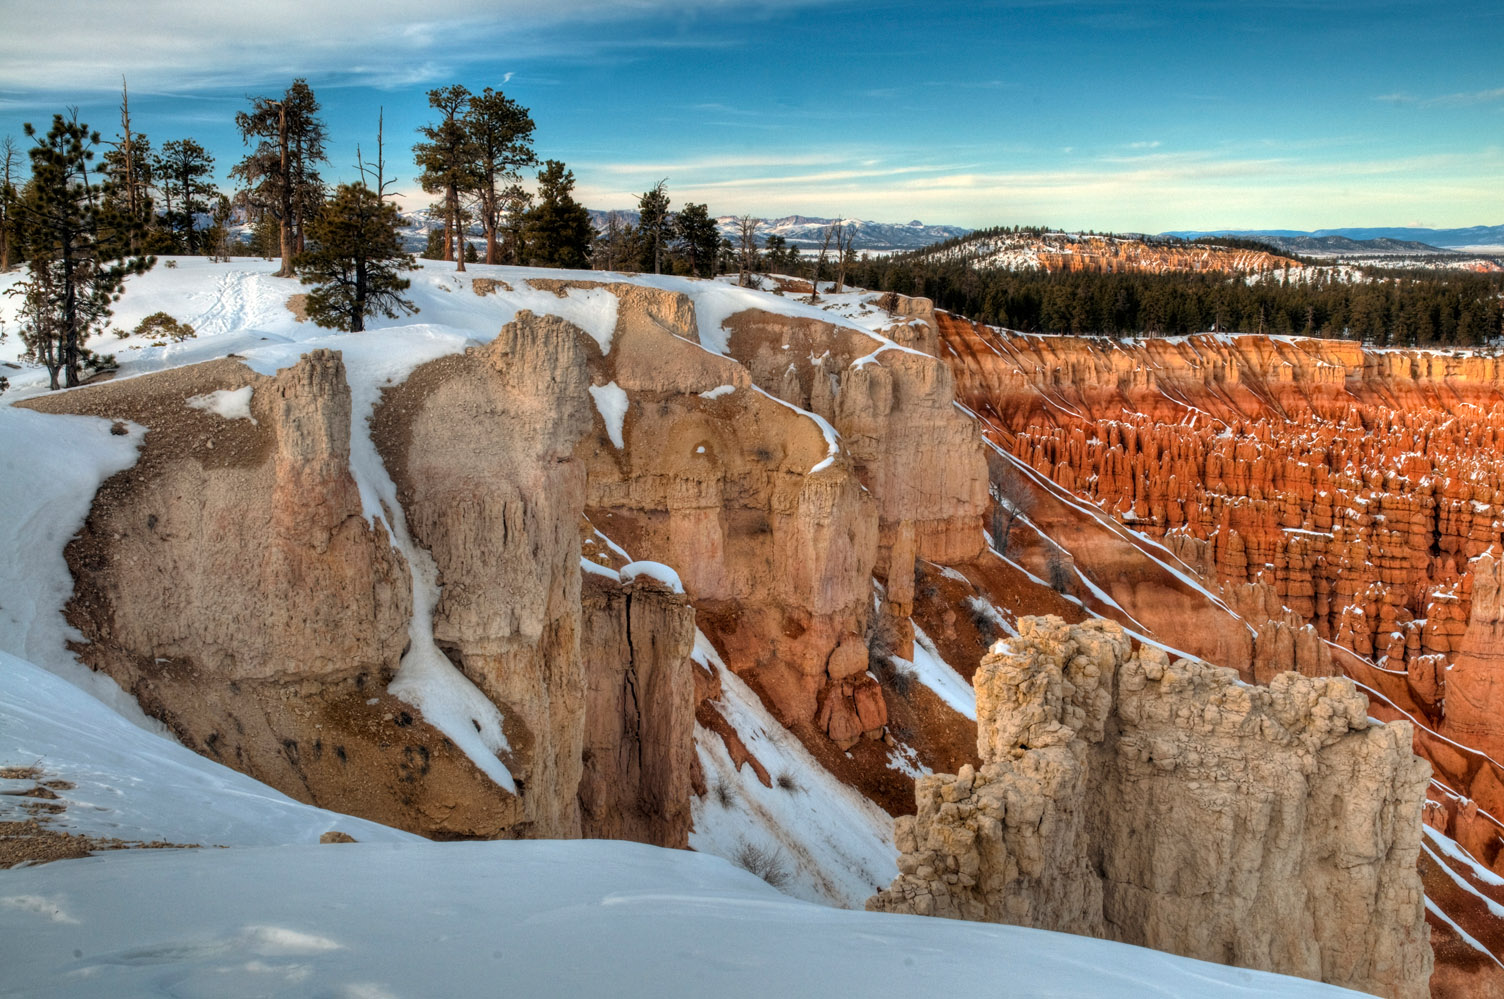 Evening at Bryce Canyon National Park, Utah